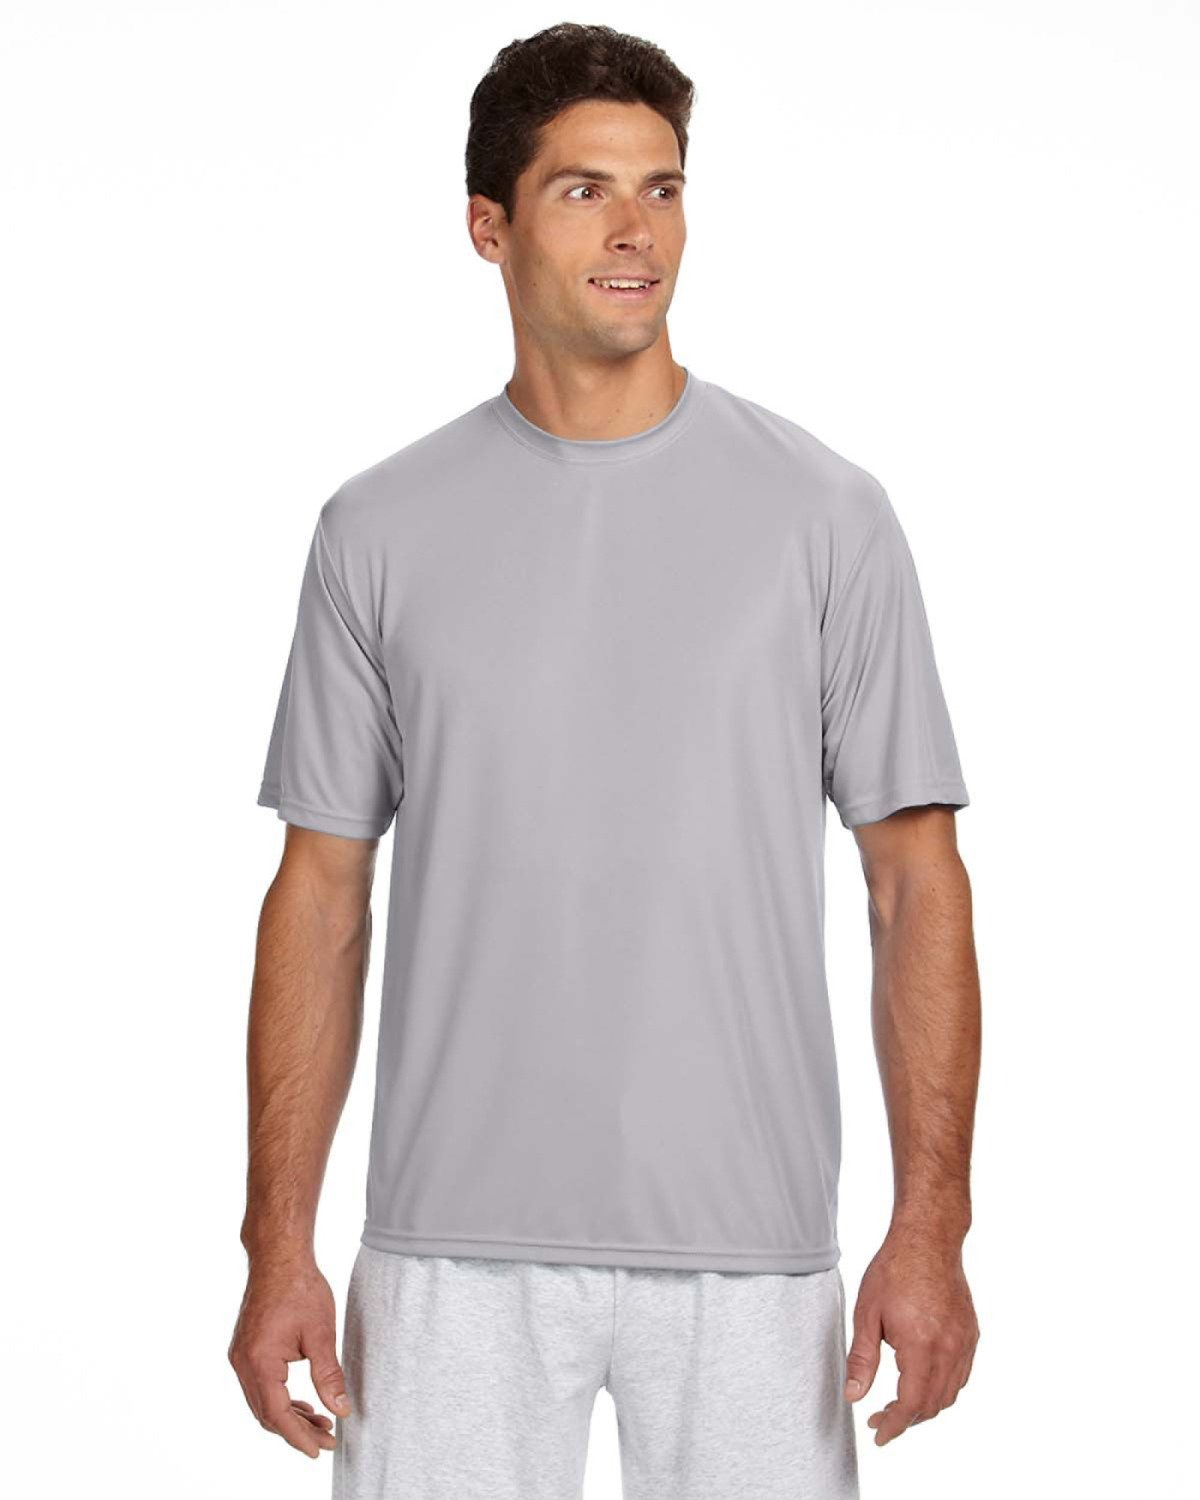 A4 Men's Cooling Performance T-Shirt SILVER